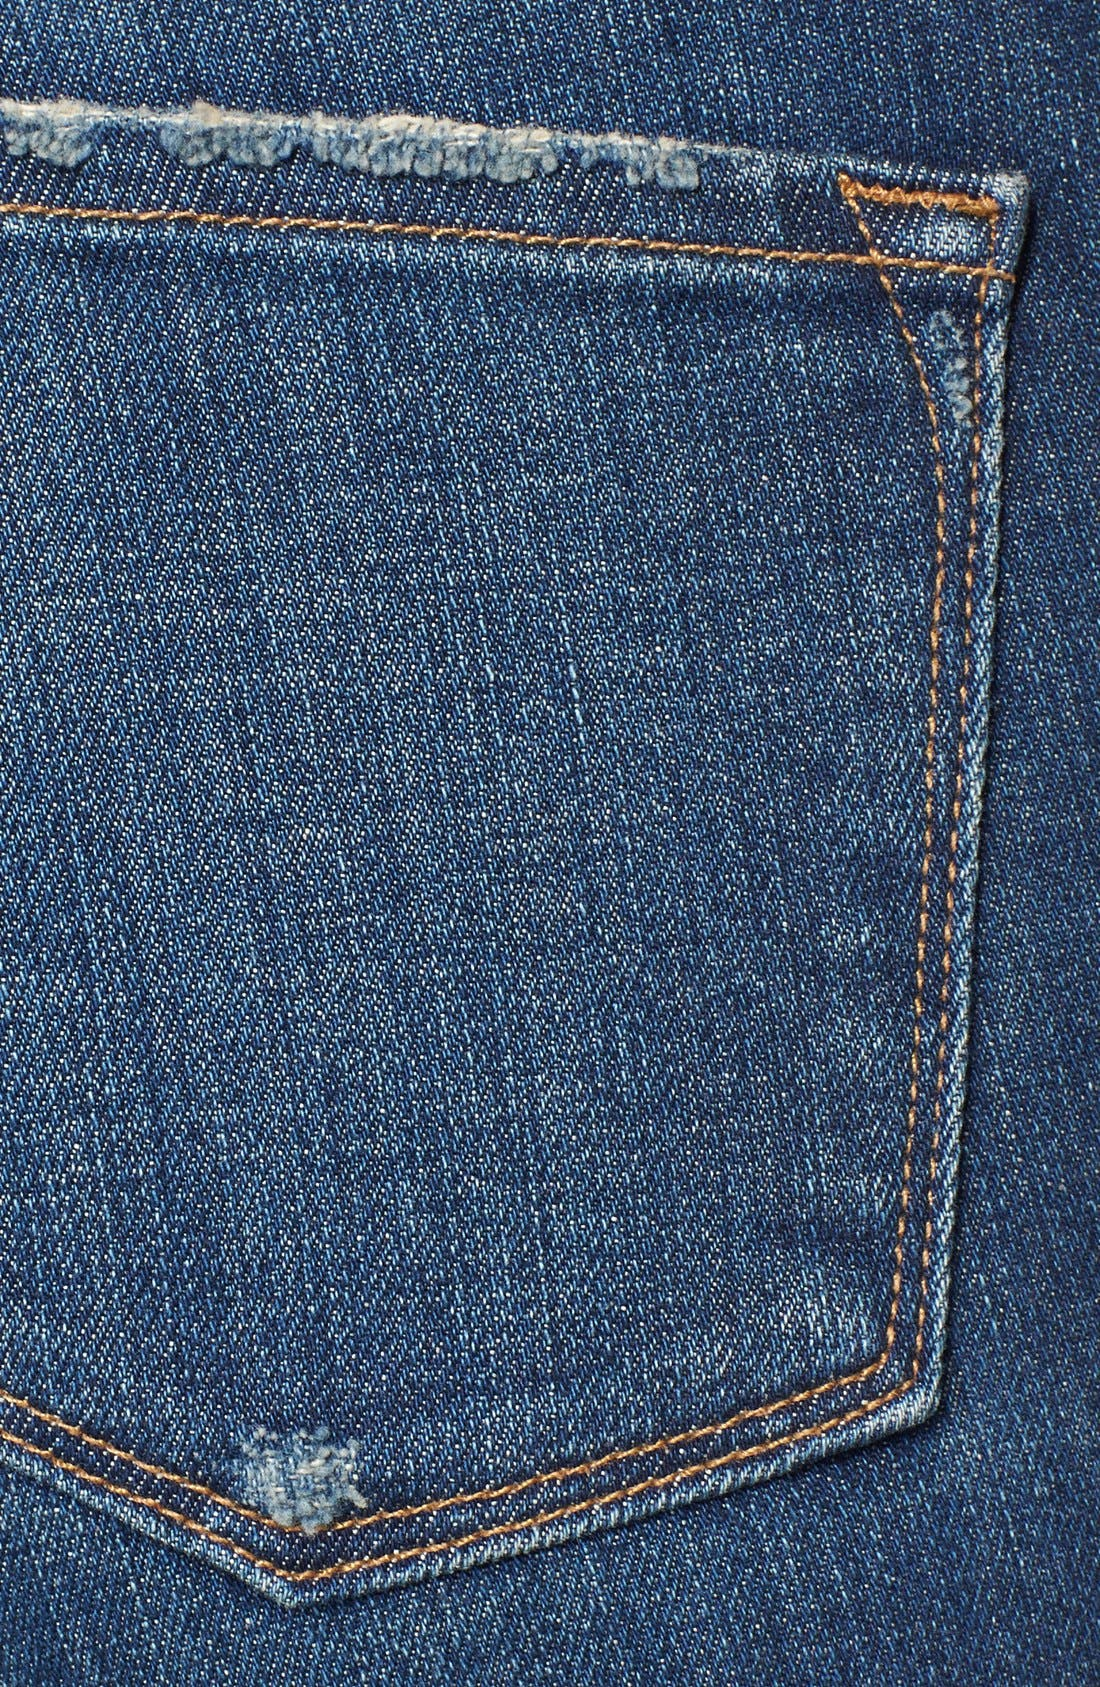 Alternate Image 3  - Frame Denim 'Le Skinny de Jeanne' Destroyed Jeans (Walgrove)